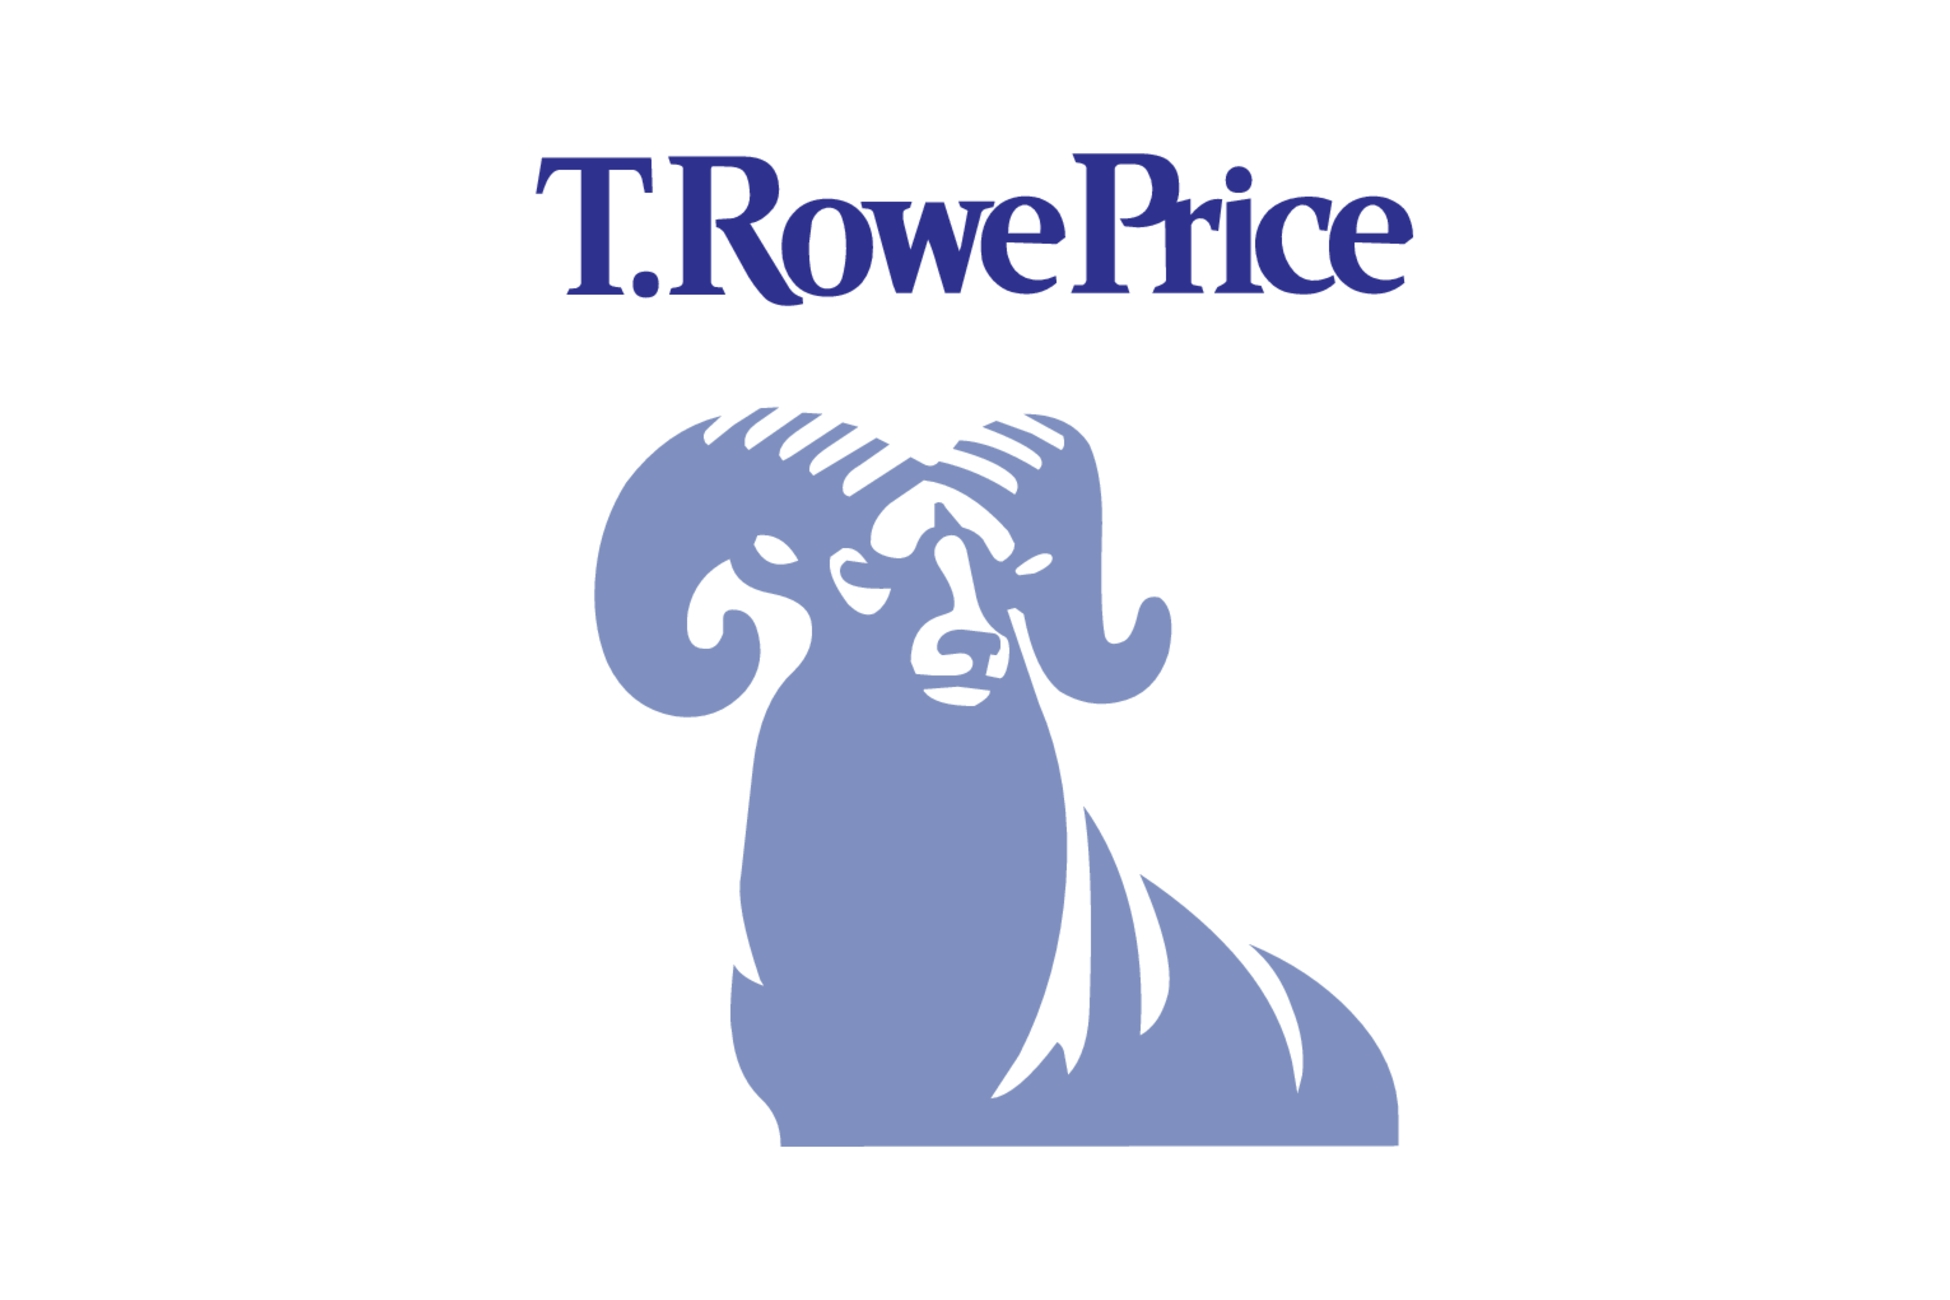 Rowe price entra nelle polizze unit linked di old mutual wealth